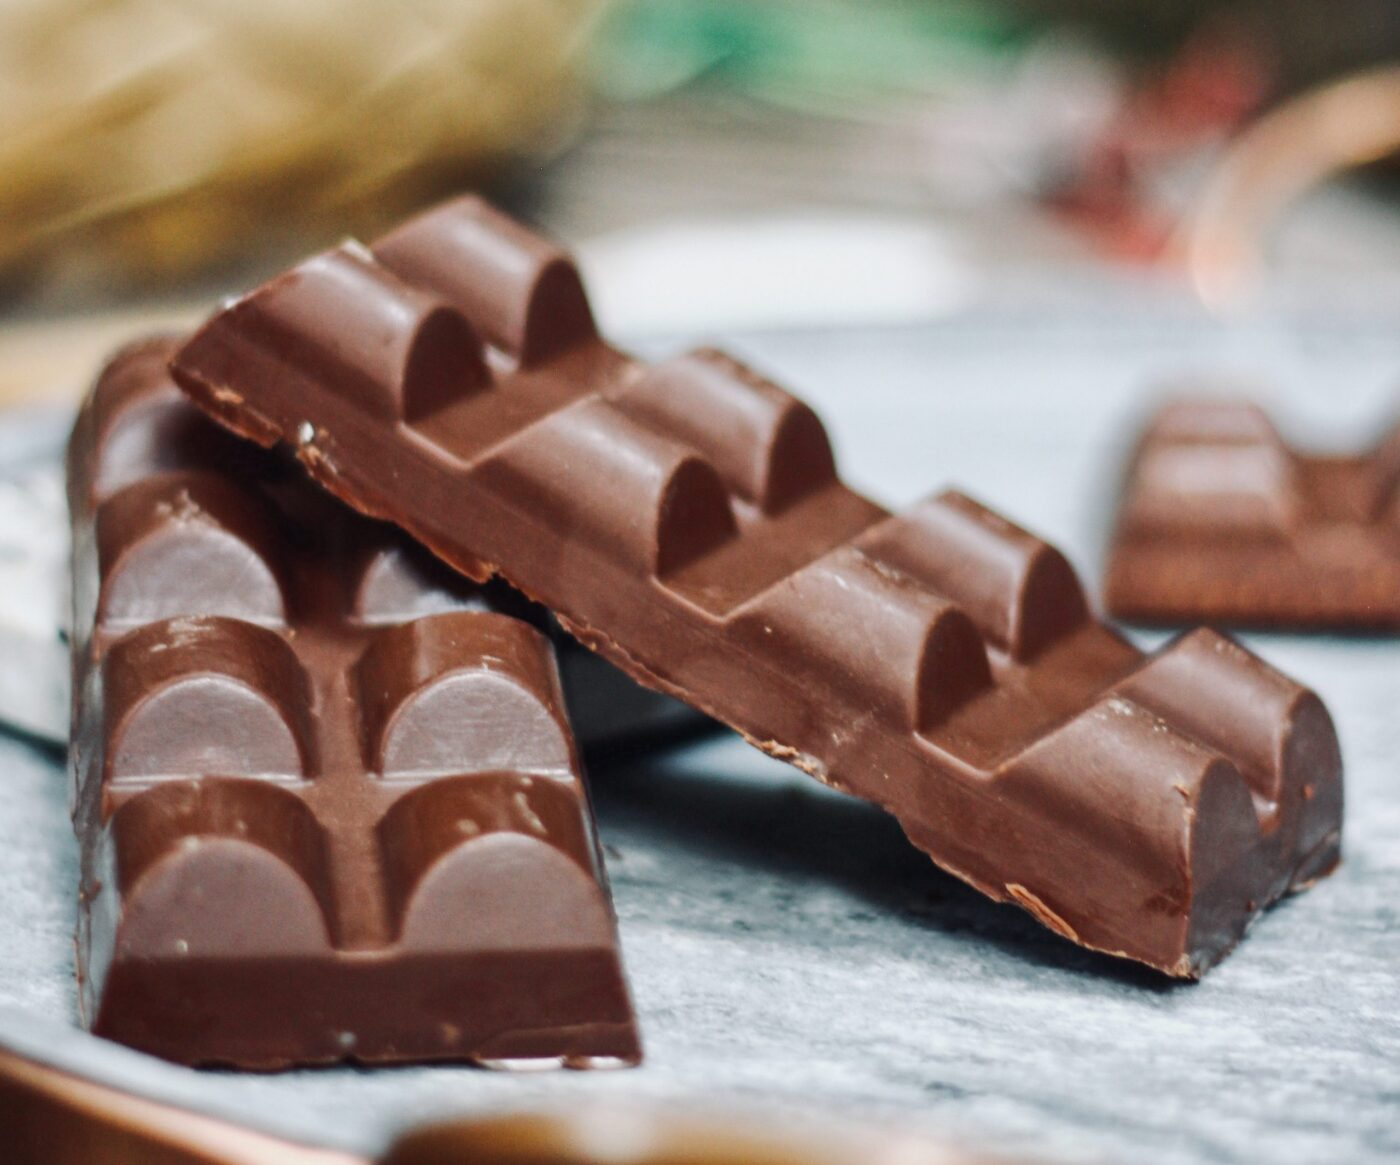 What makes a luxury chocolate?